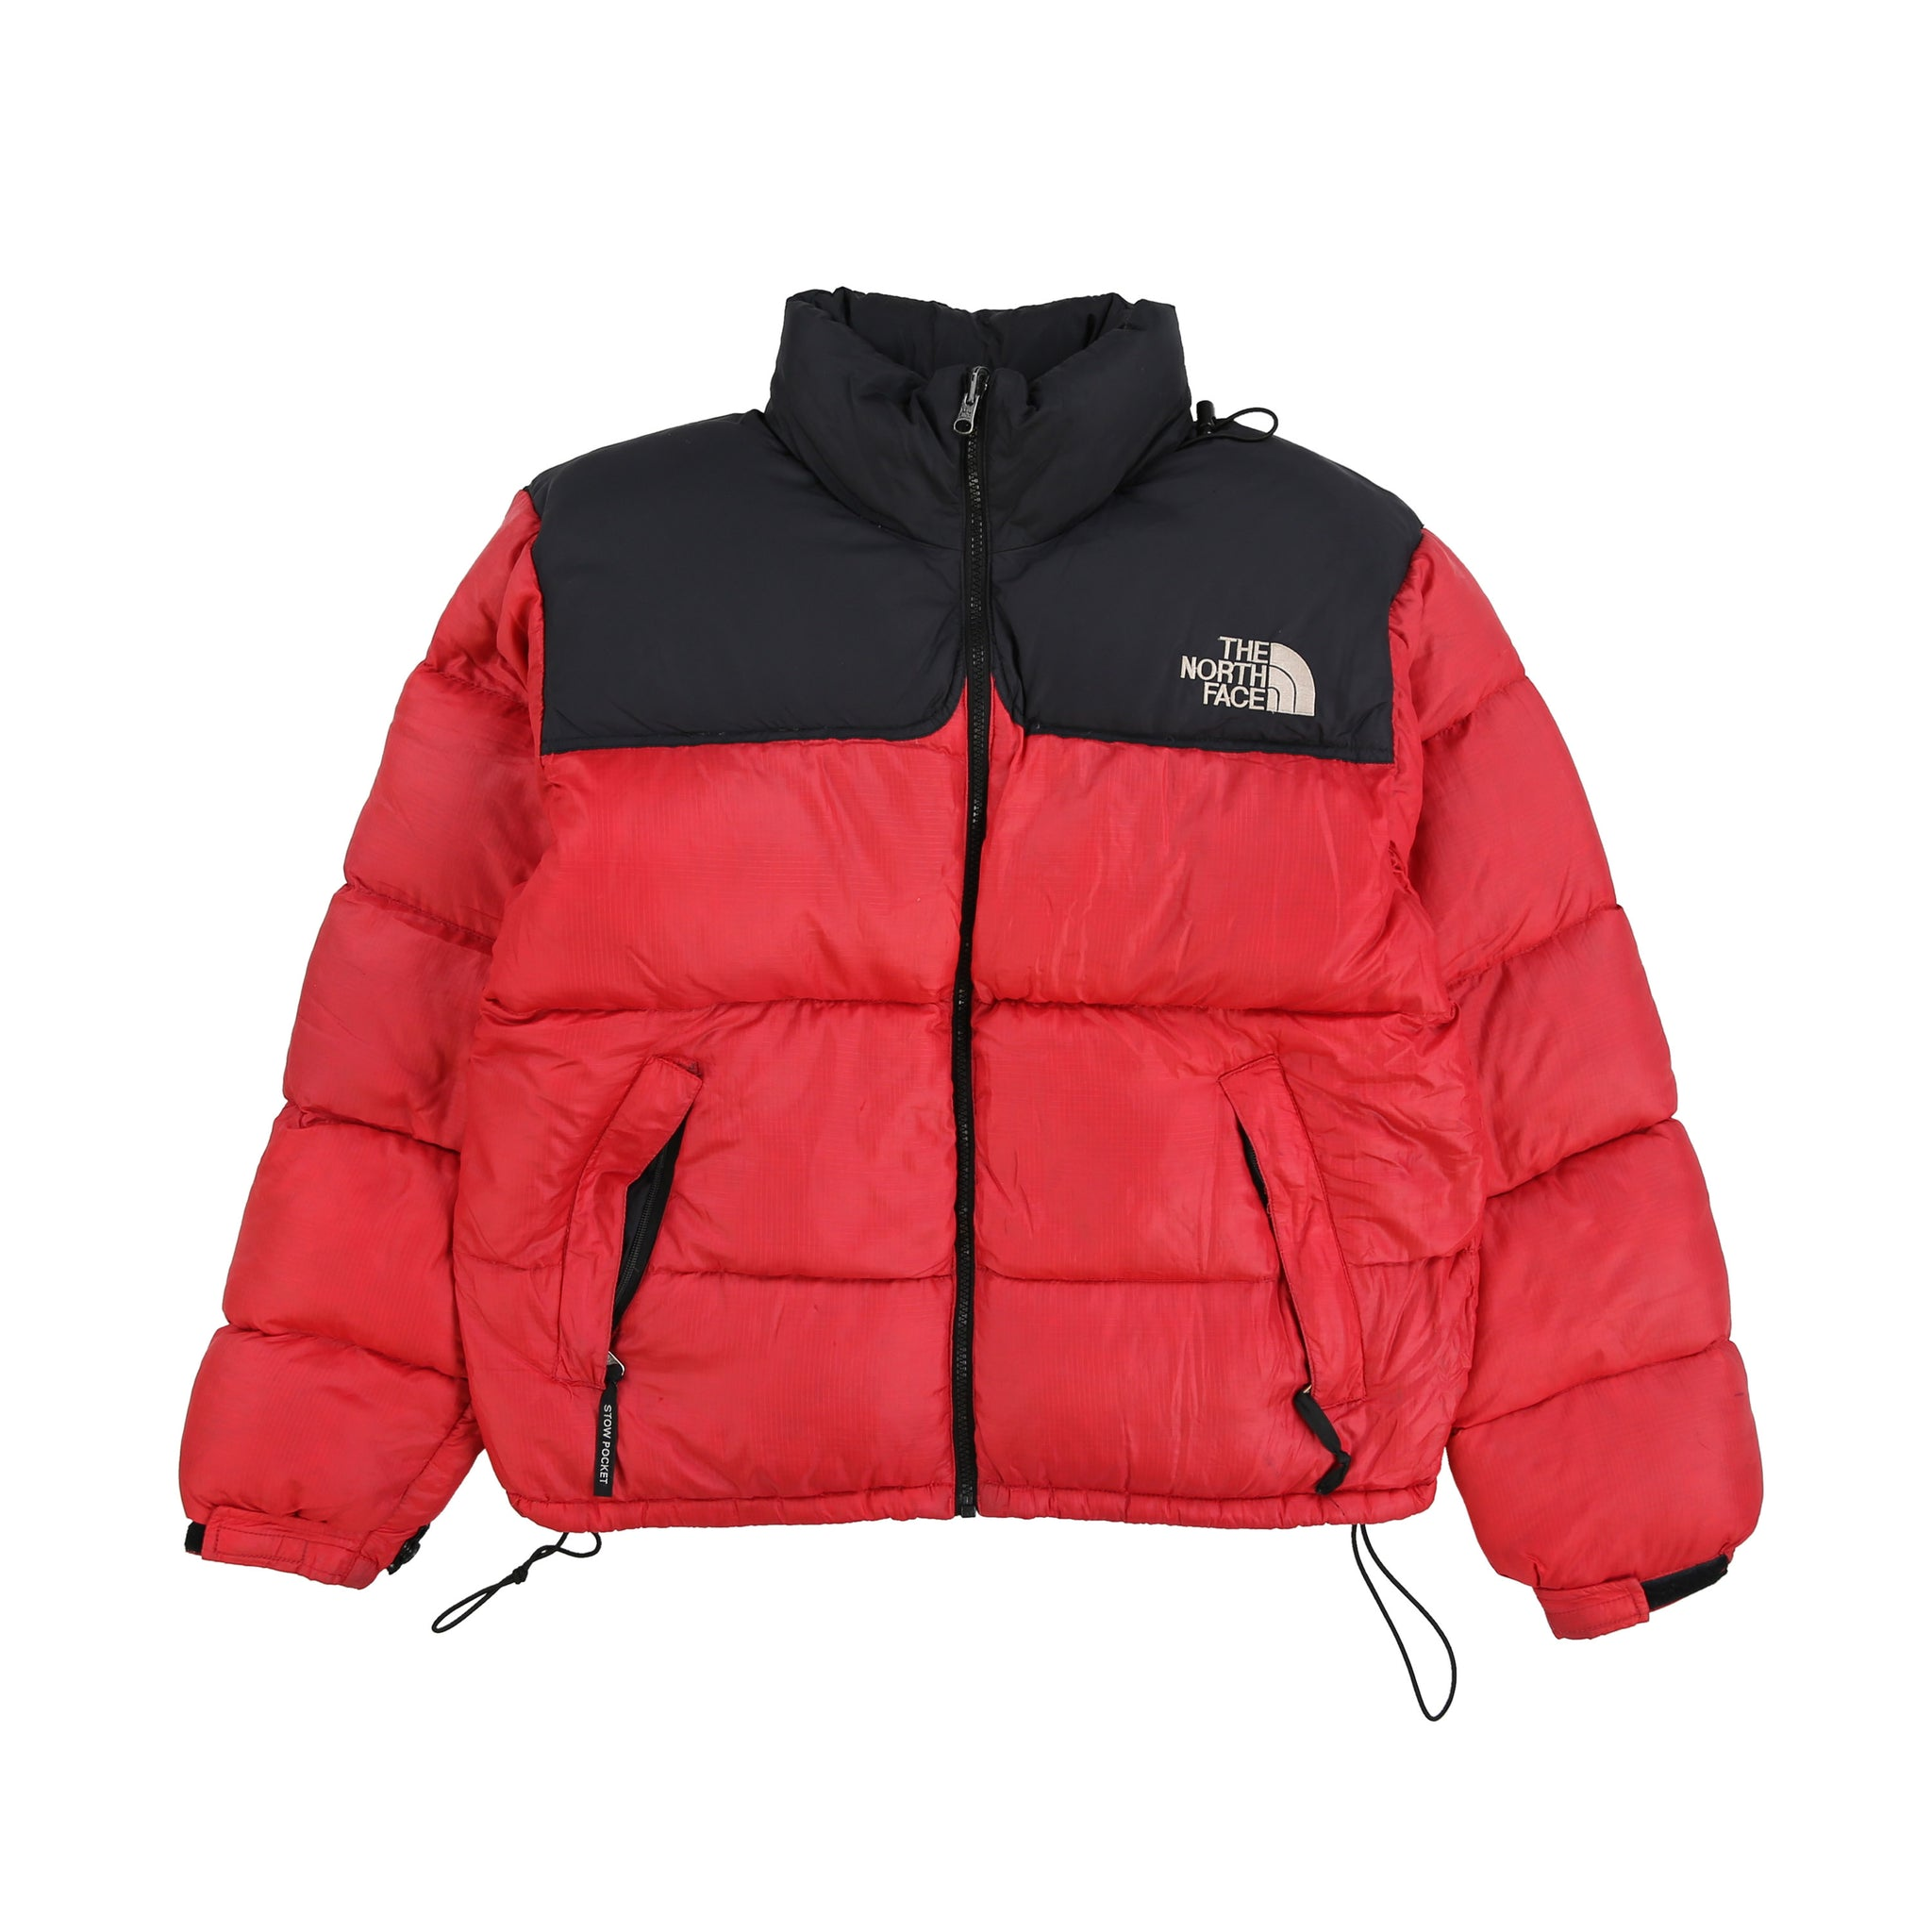 67ba3cfc11 Vintage North Face Nuptse 700 Down Jacket Size S XS – catch+release